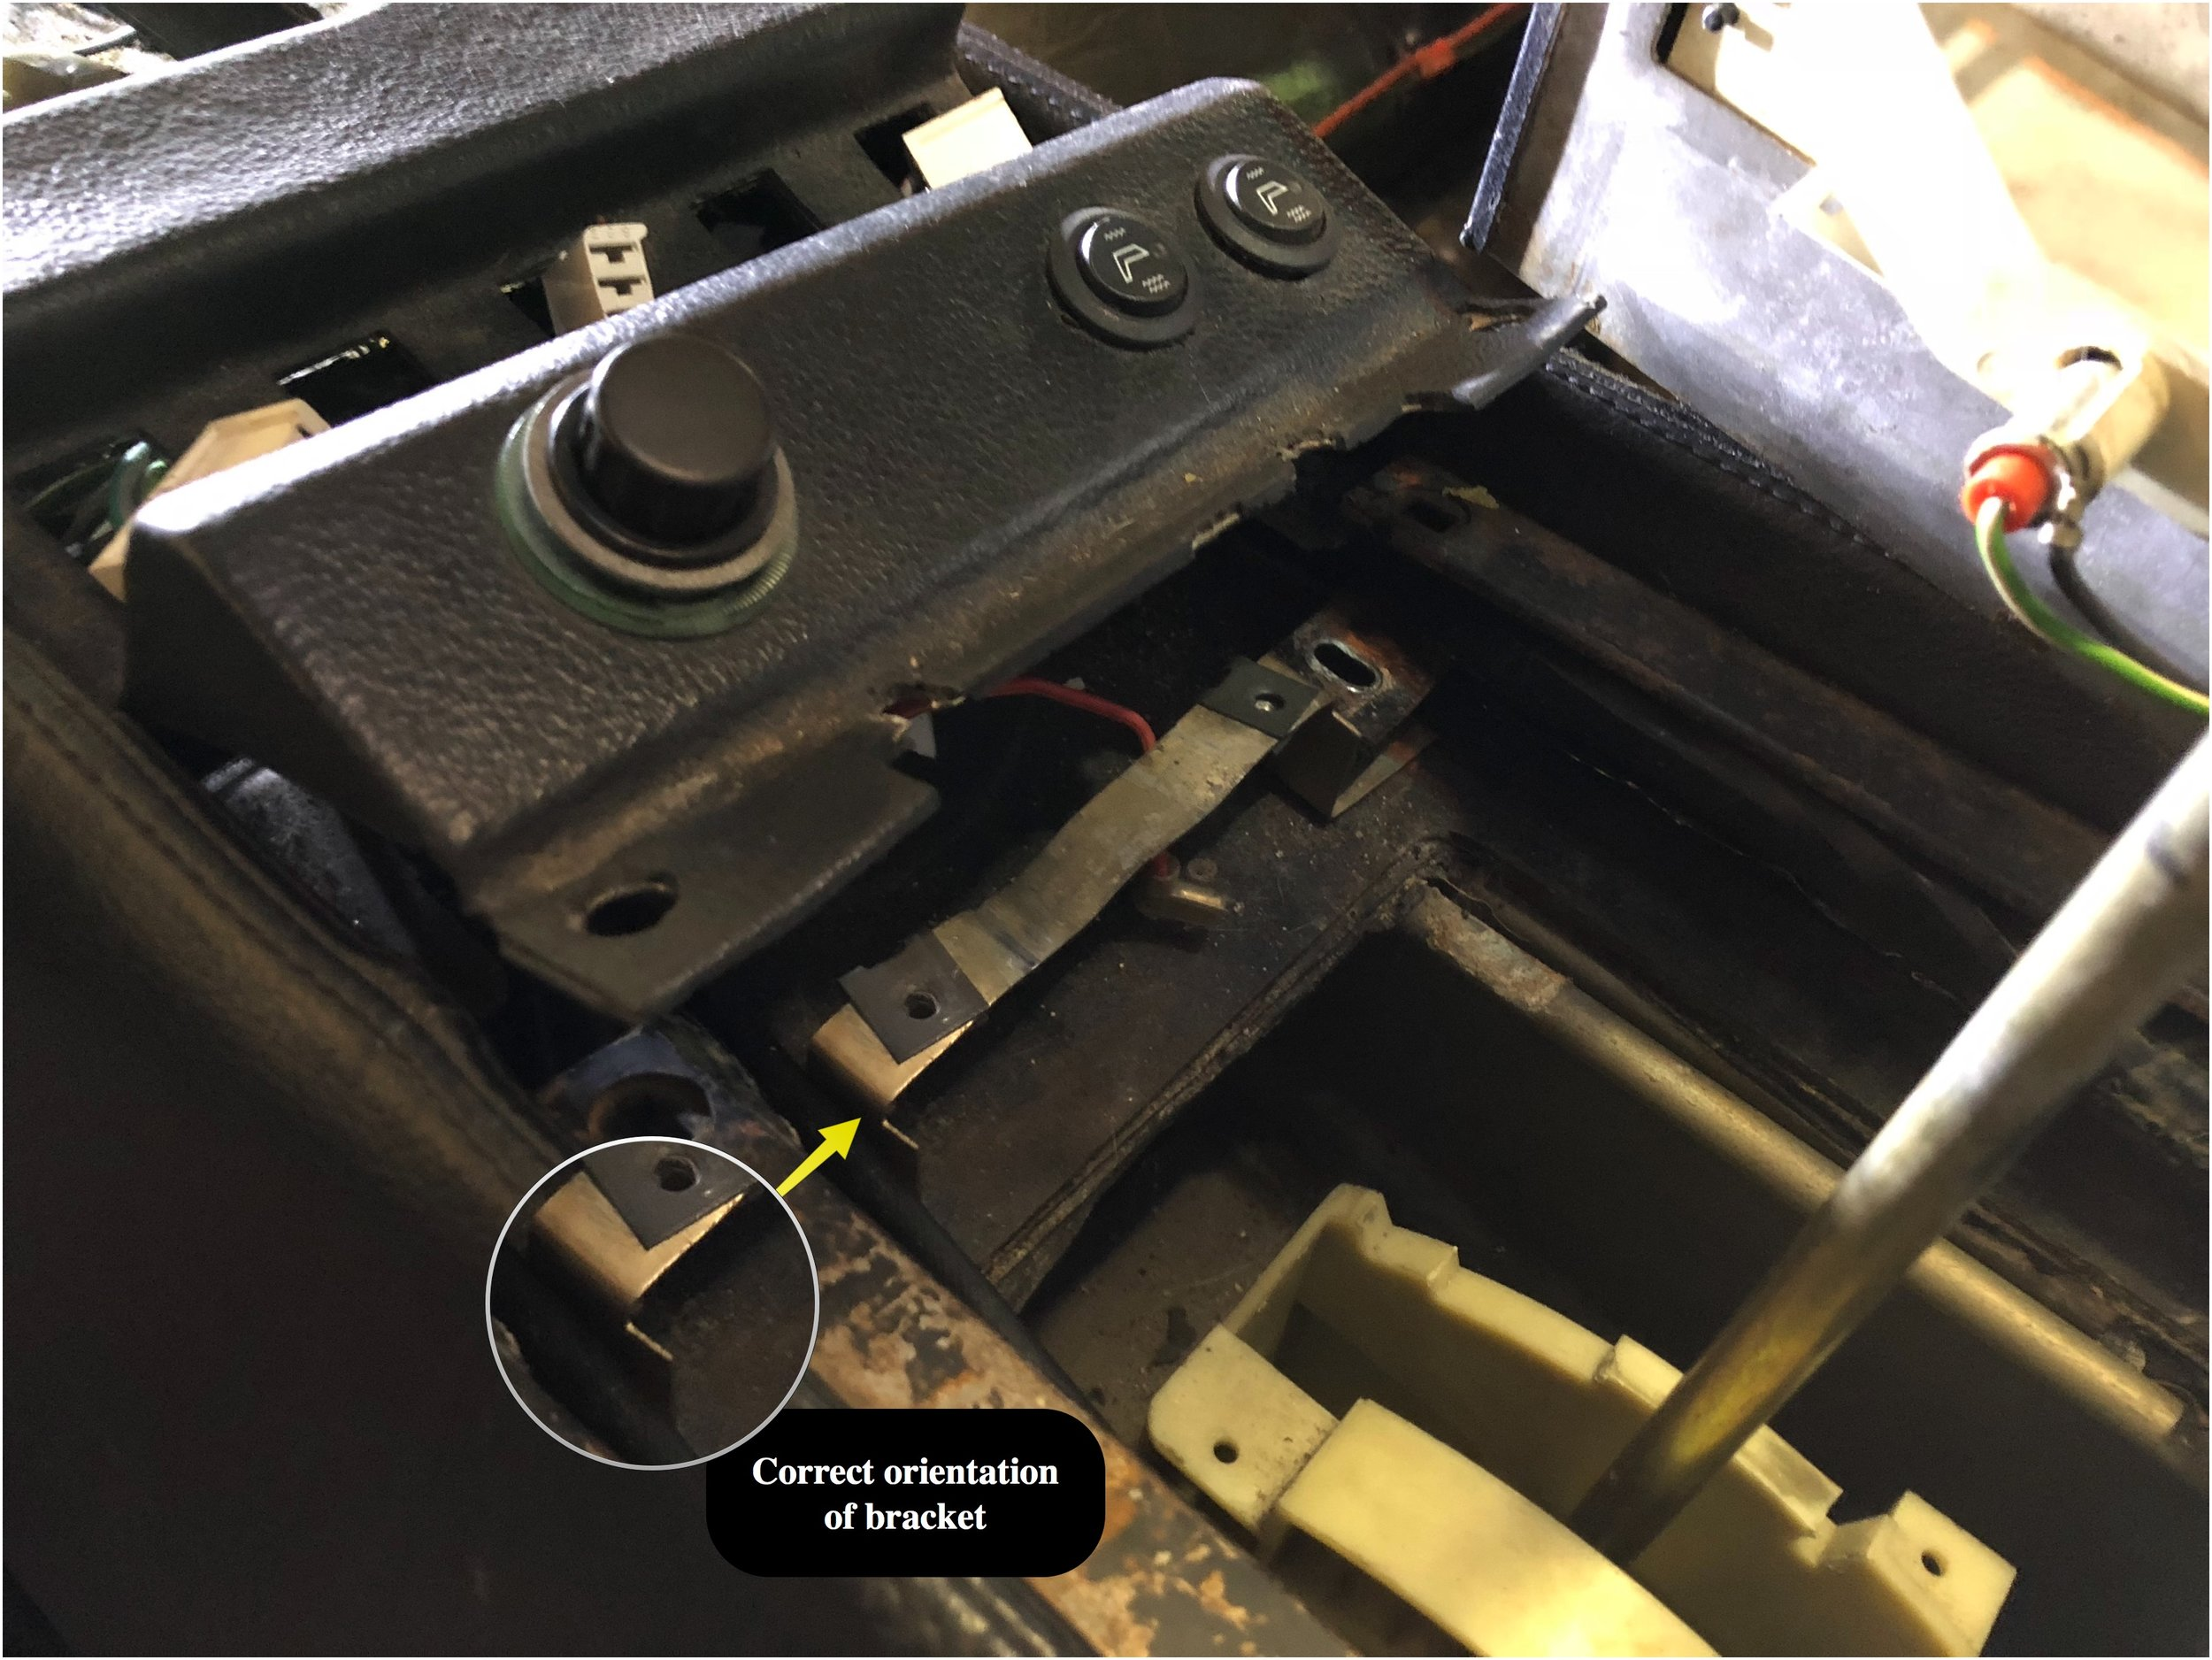 The correct orientation of the shifter plate mounting bracket.